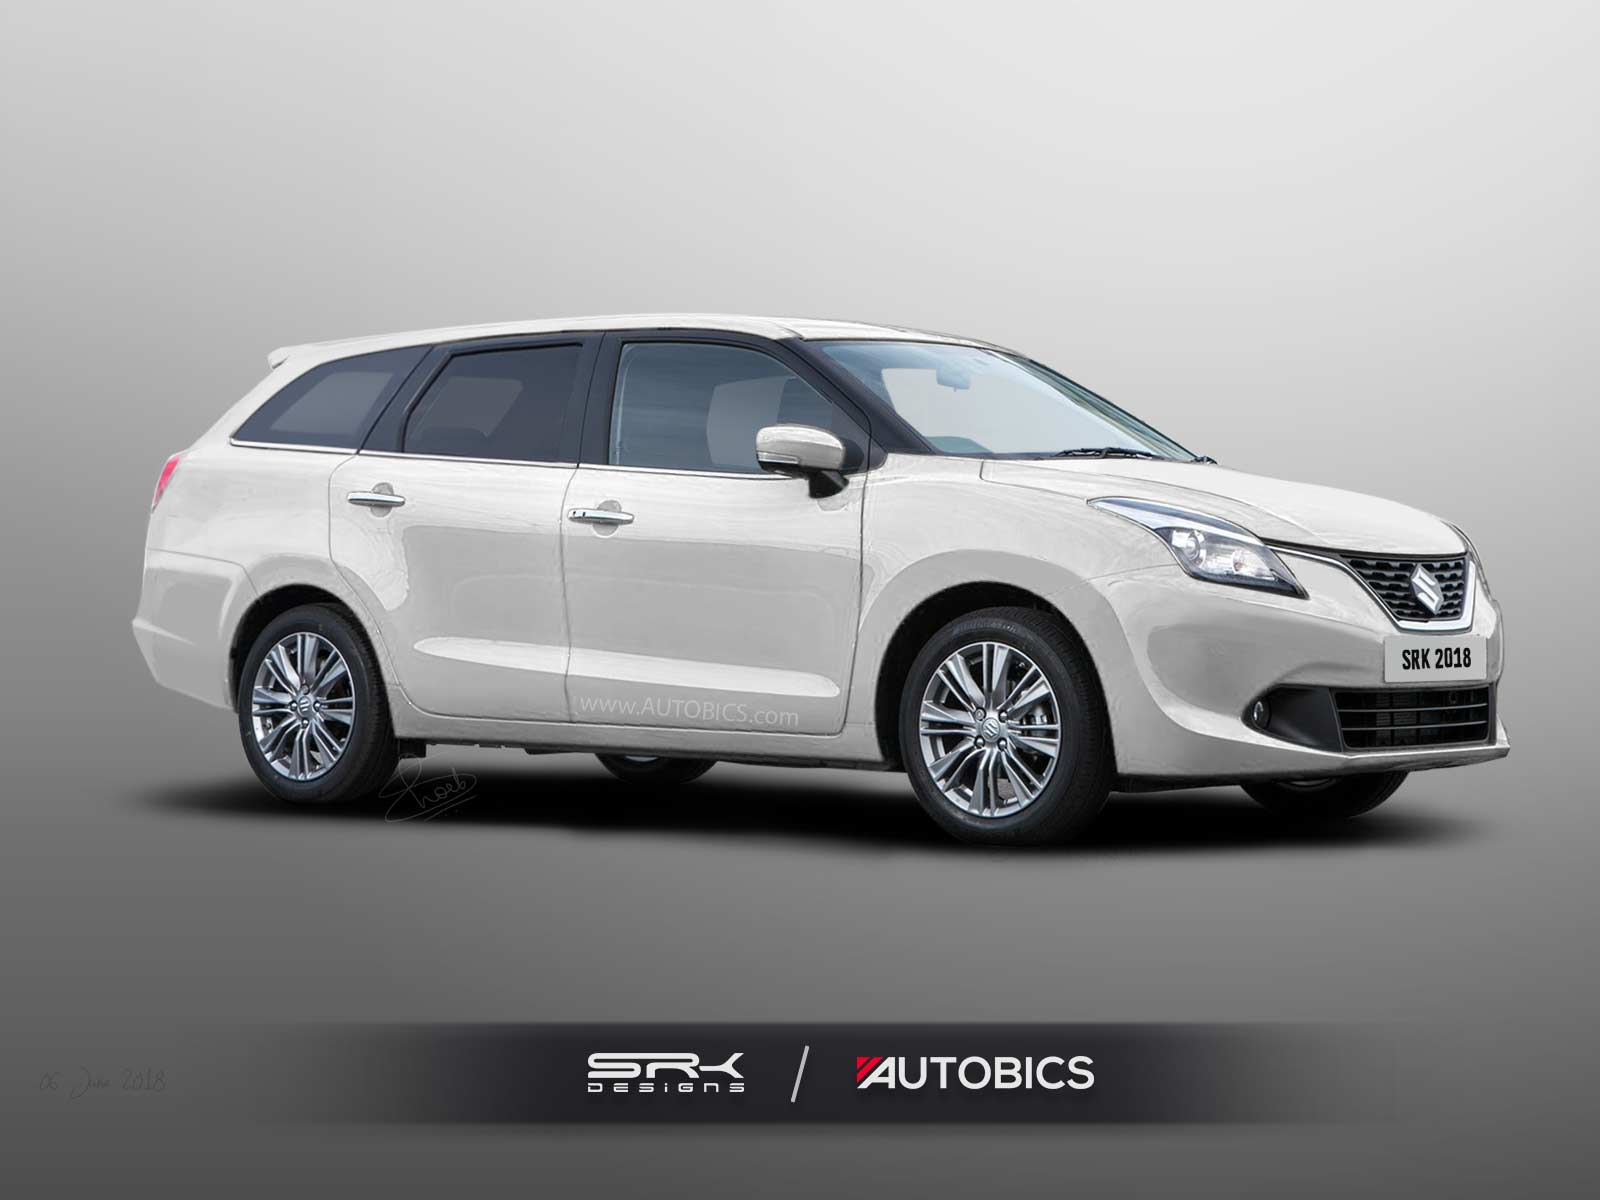 virtually tuned maruti suzuki baleno station wagon rendering autobics. Black Bedroom Furniture Sets. Home Design Ideas